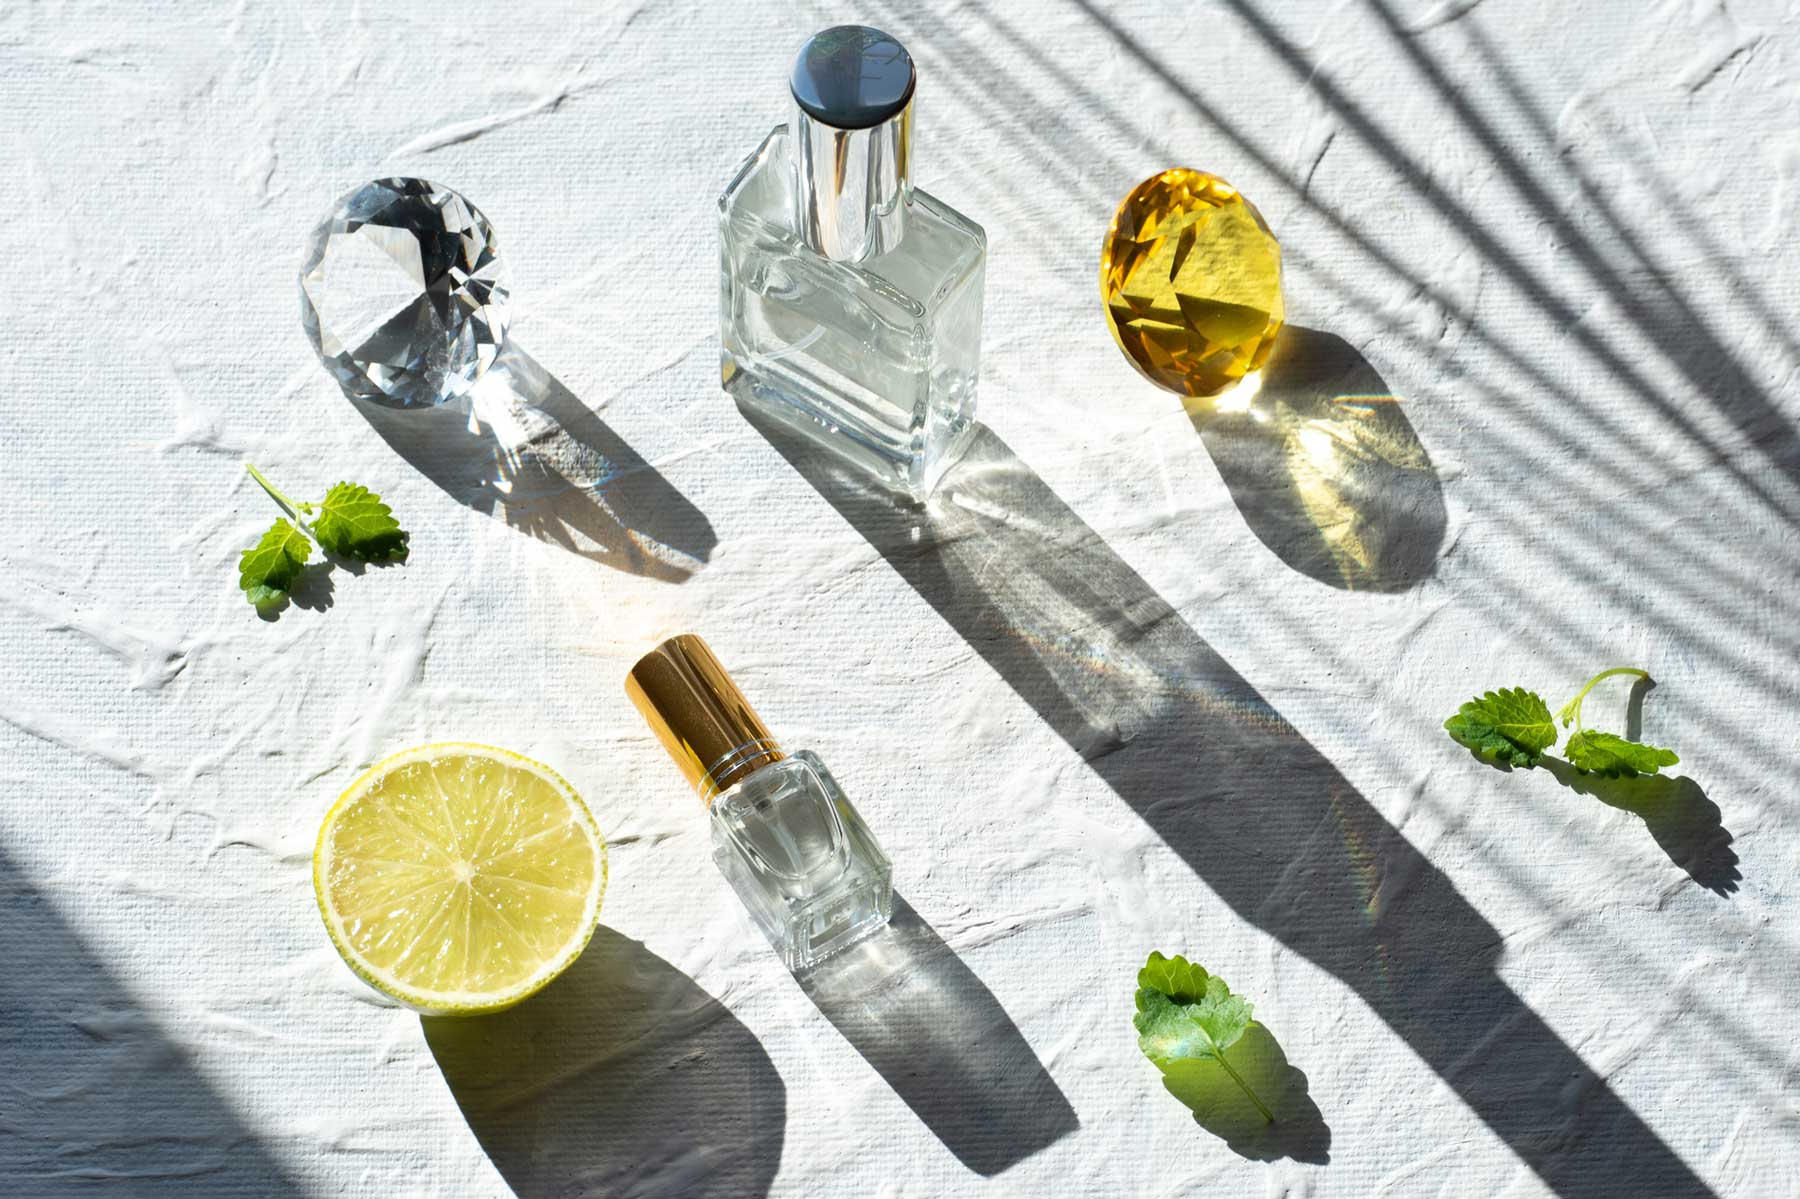 Transparent perfume bottle on a white background. Bright sunlight.